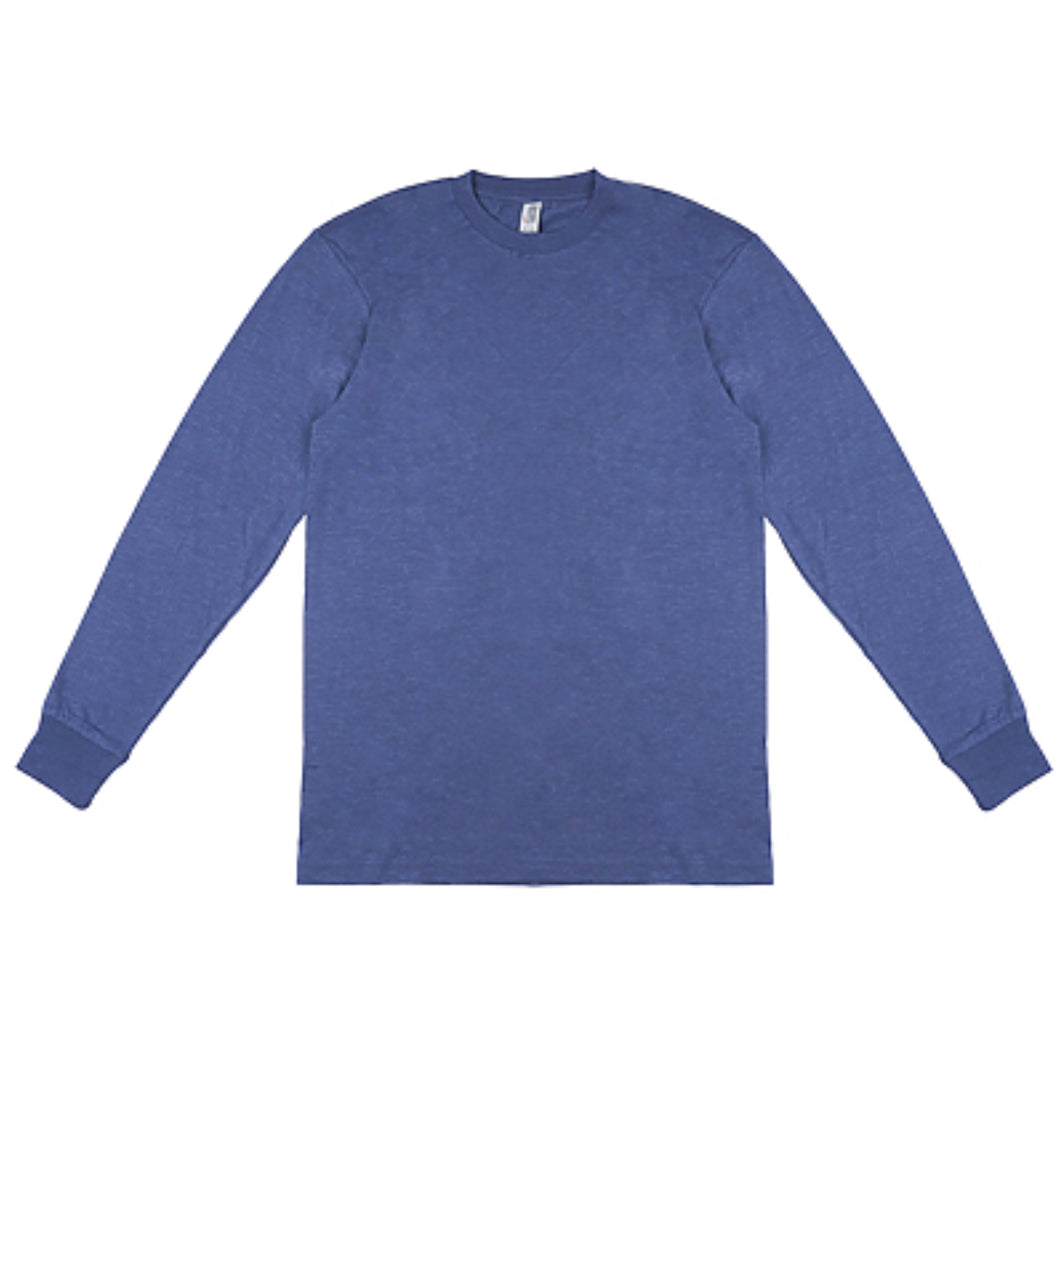 GUYS & CO. - Men's Long Sleeve Crew Neck T-Shirt - Guys and Co.